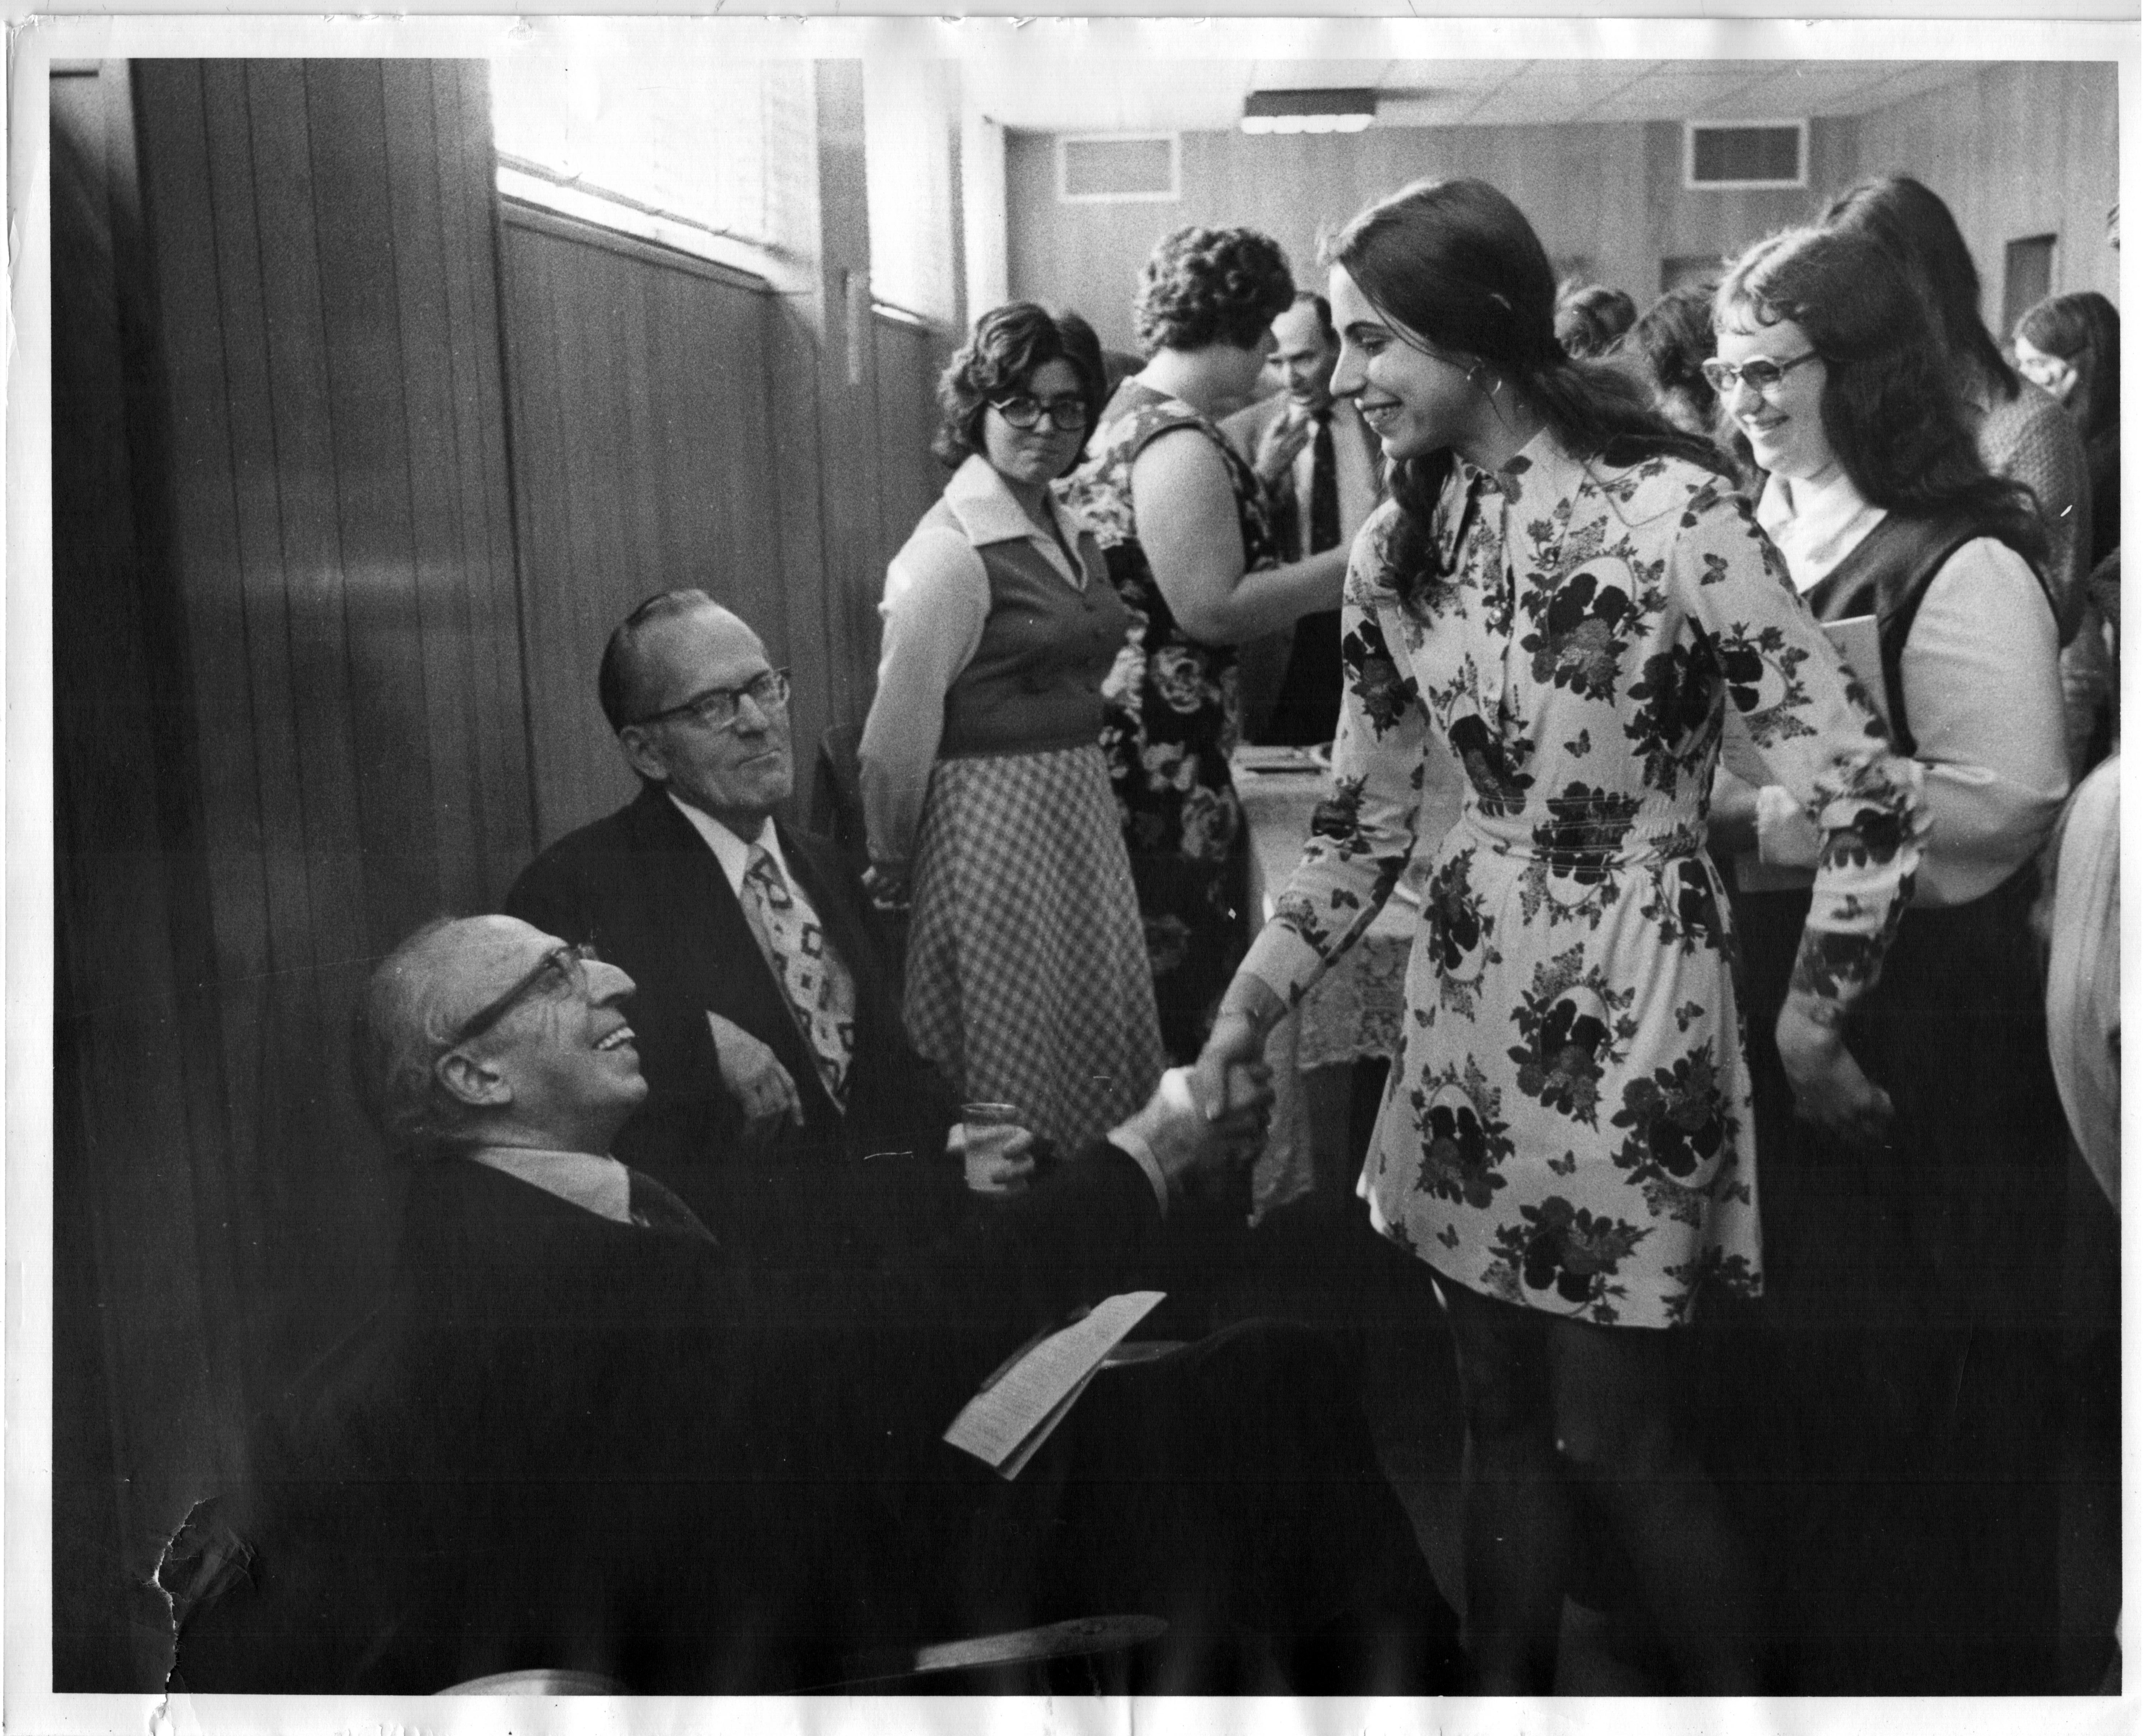 Aaron Copland at WCSU in 1975, being greeted by Sharon Henderson